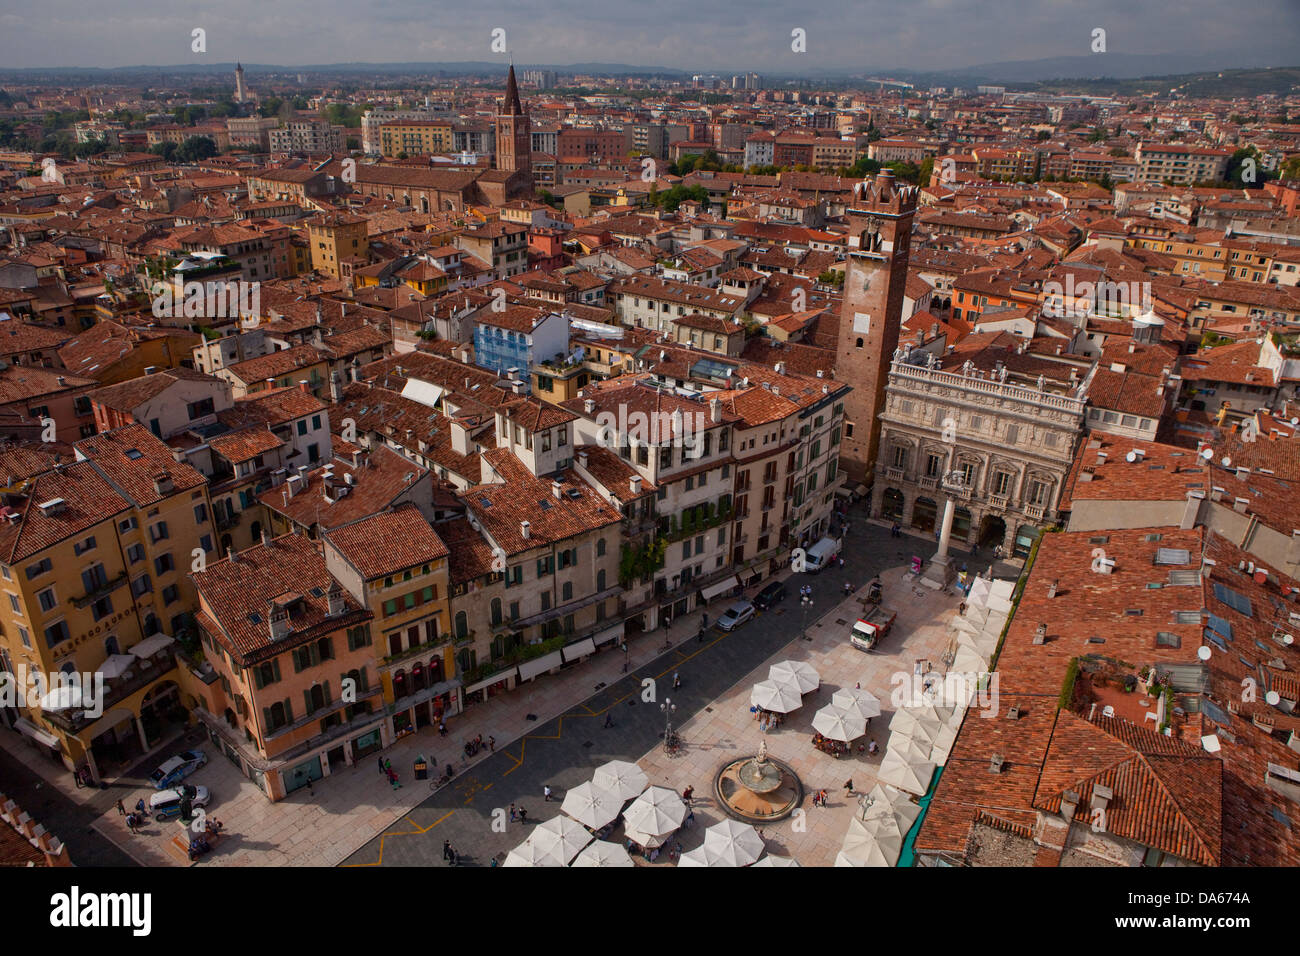 Verona, town, city, Italy, Europe, Switzerland, Europe, overview, roofs, - Stock Image